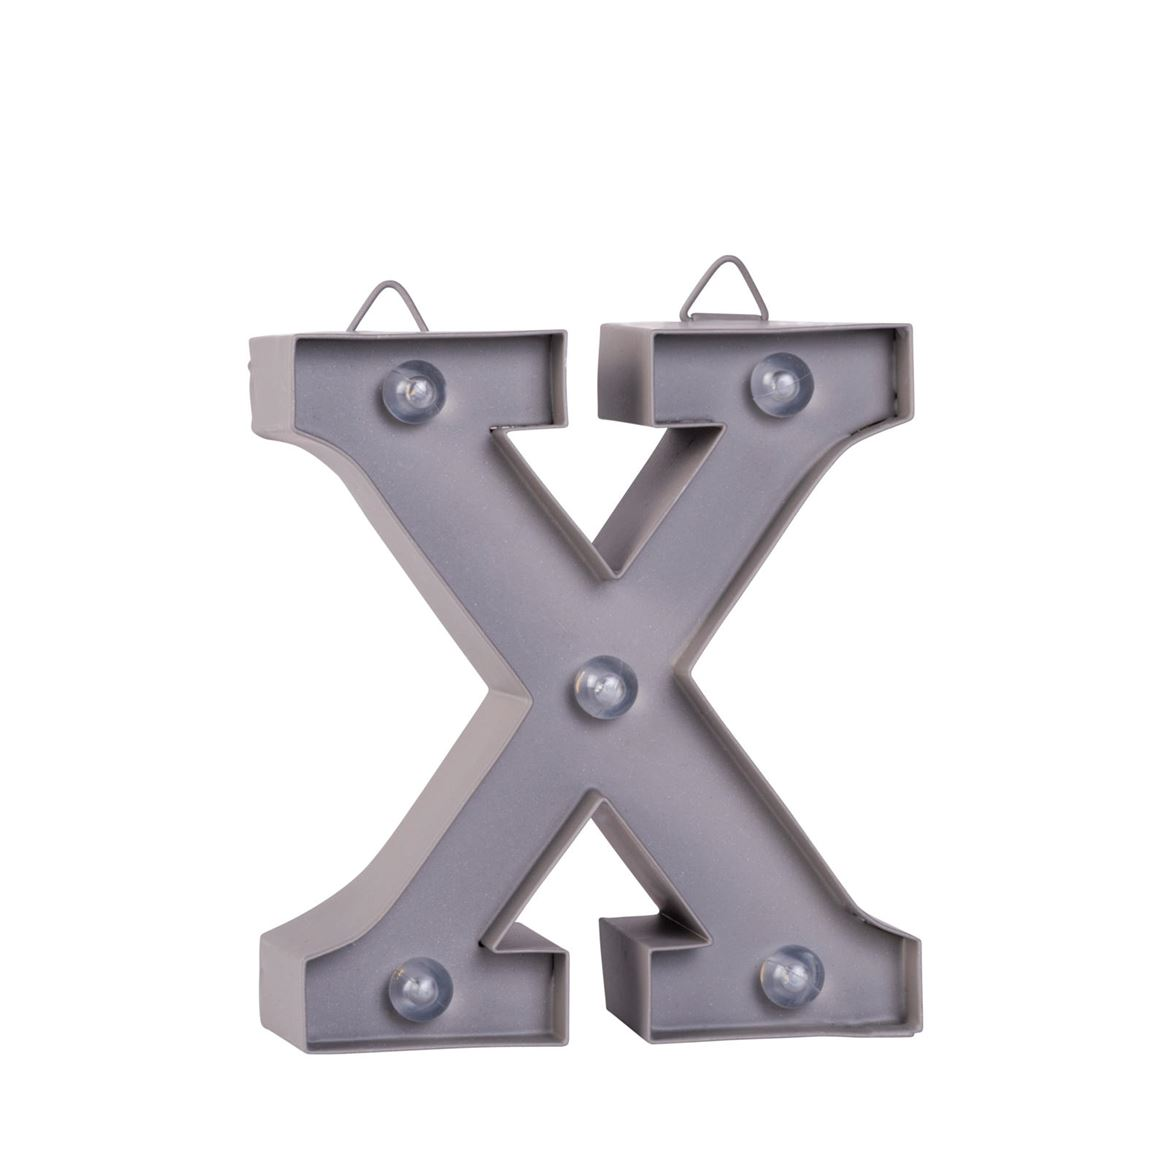 LED Letter X metaal H 10 cm_led-letter-x-metaal-h-10-cm